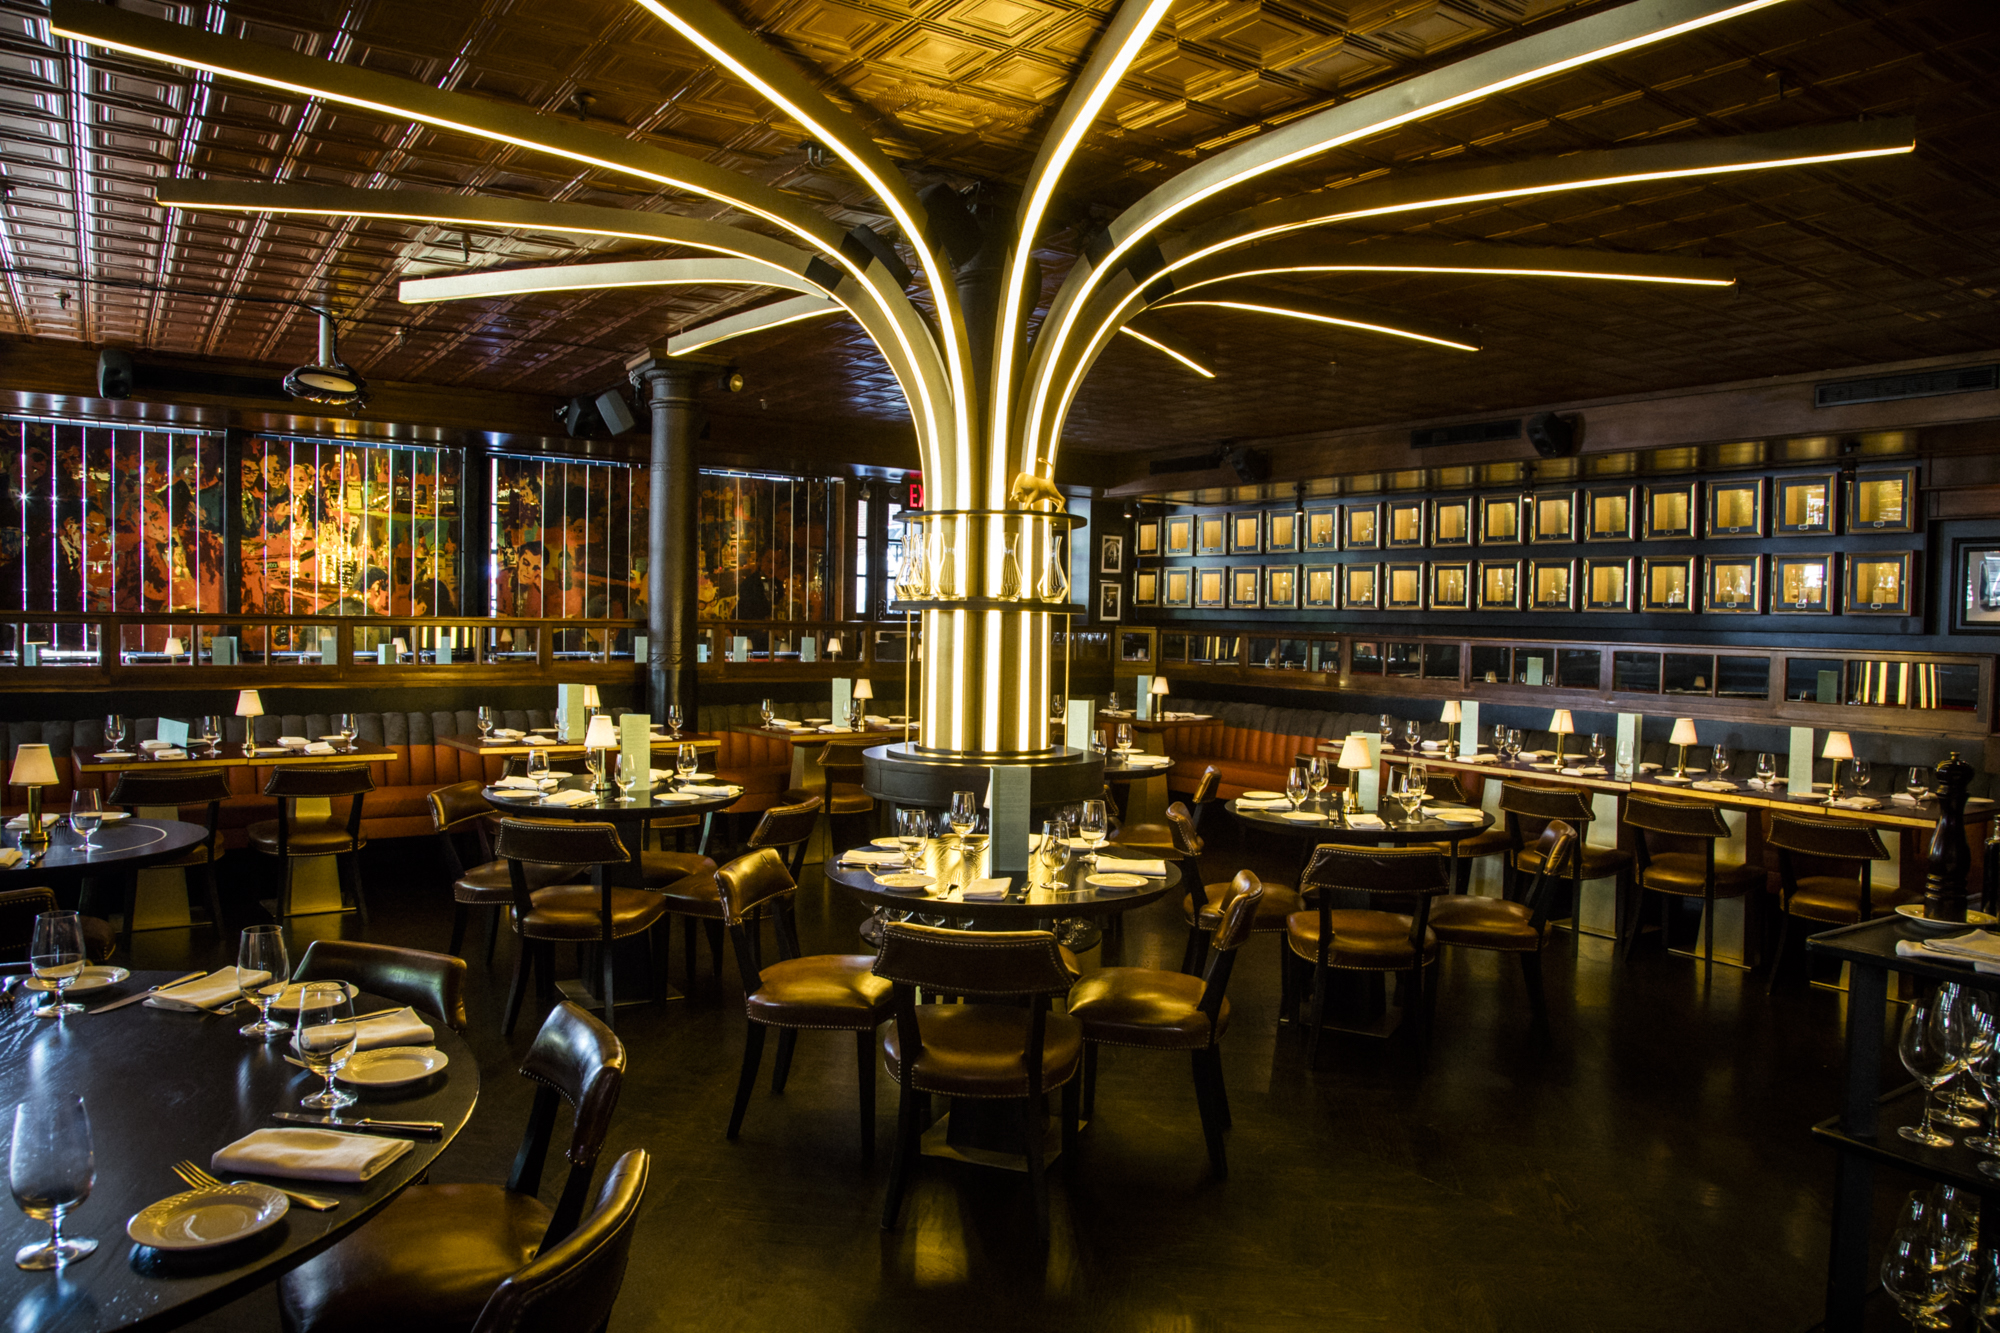 Harry's NYC : Financial District Restaurant And Steakhouse